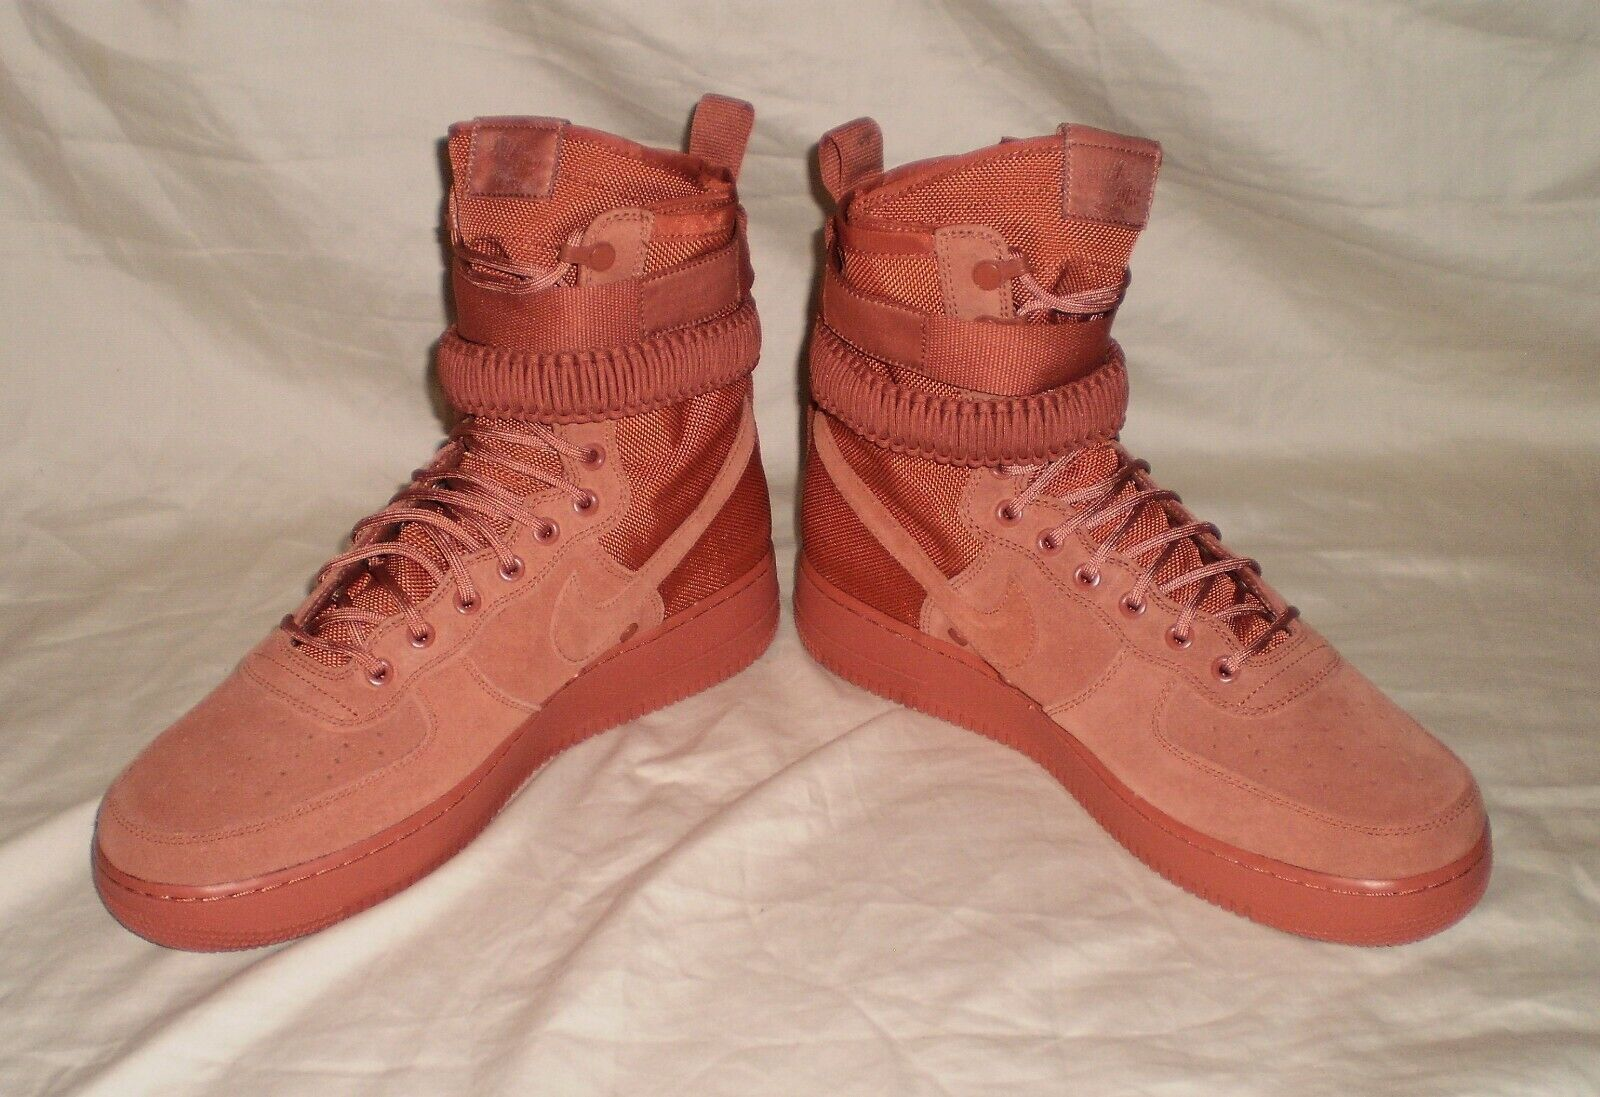 MENS NIKE SF AF1 AIR FORCE 1 DUSTY PEACH SNEAKERBOOTS SIZE 11.5